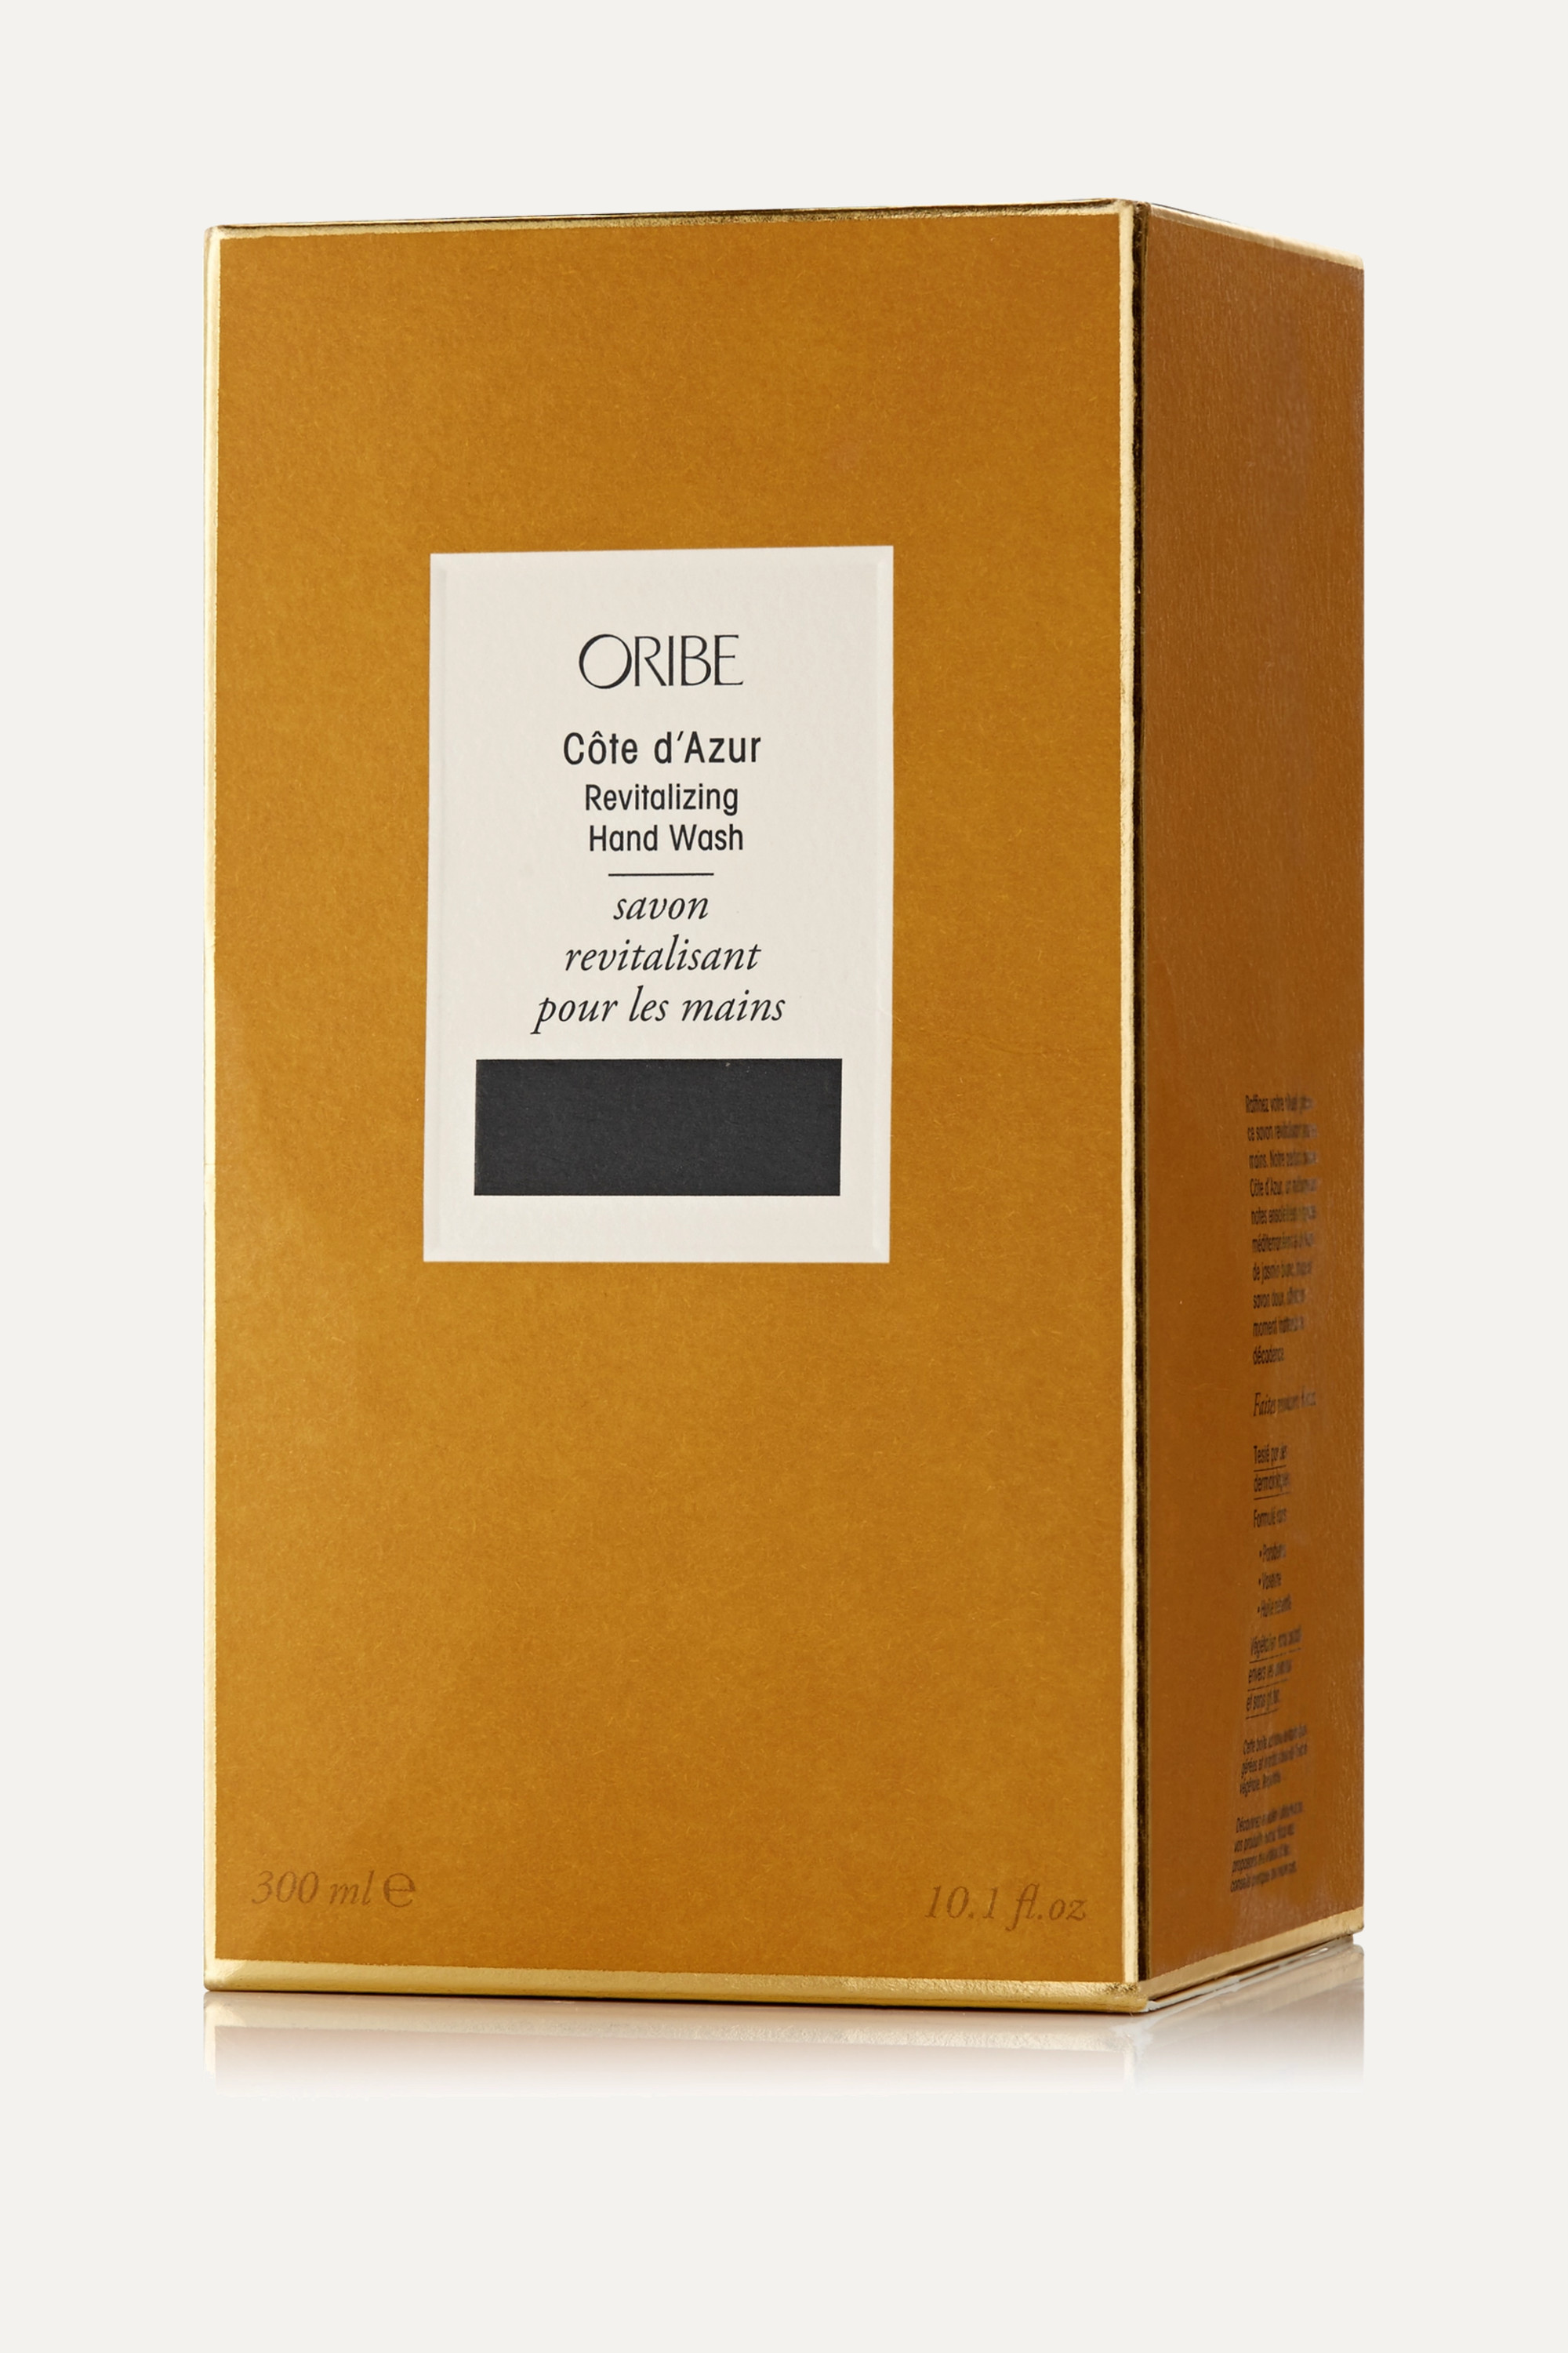 ORIBE Côte d'Azur Revitalizing Hand Wash, 300ml